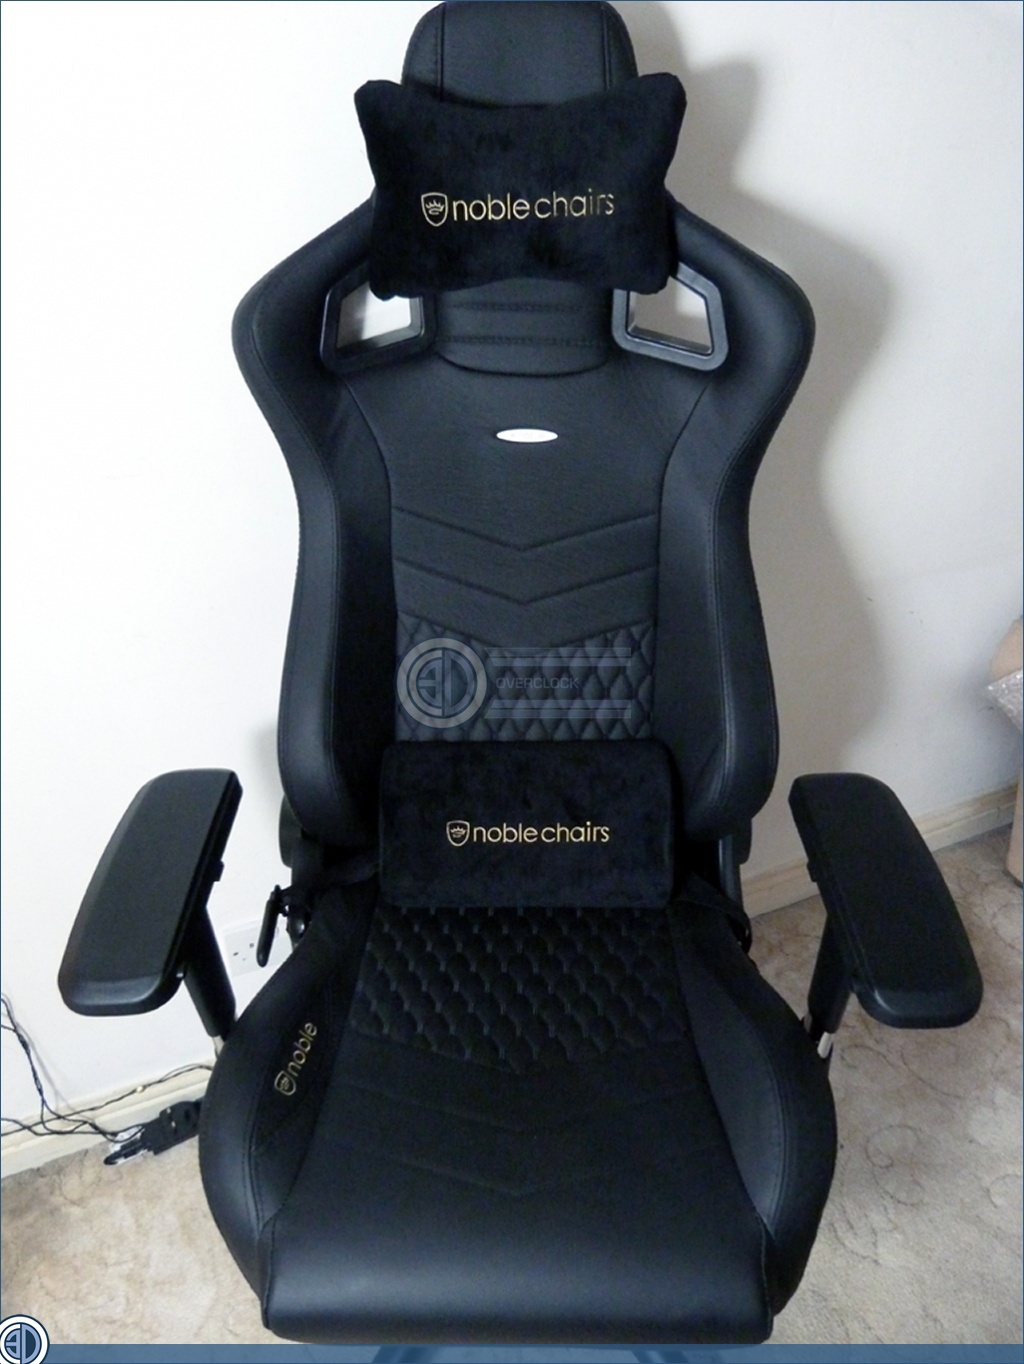 Swell Nobelchairs Epic Real Leather Gaming Chair Review Final Ibusinesslaw Wood Chair Design Ideas Ibusinesslaworg